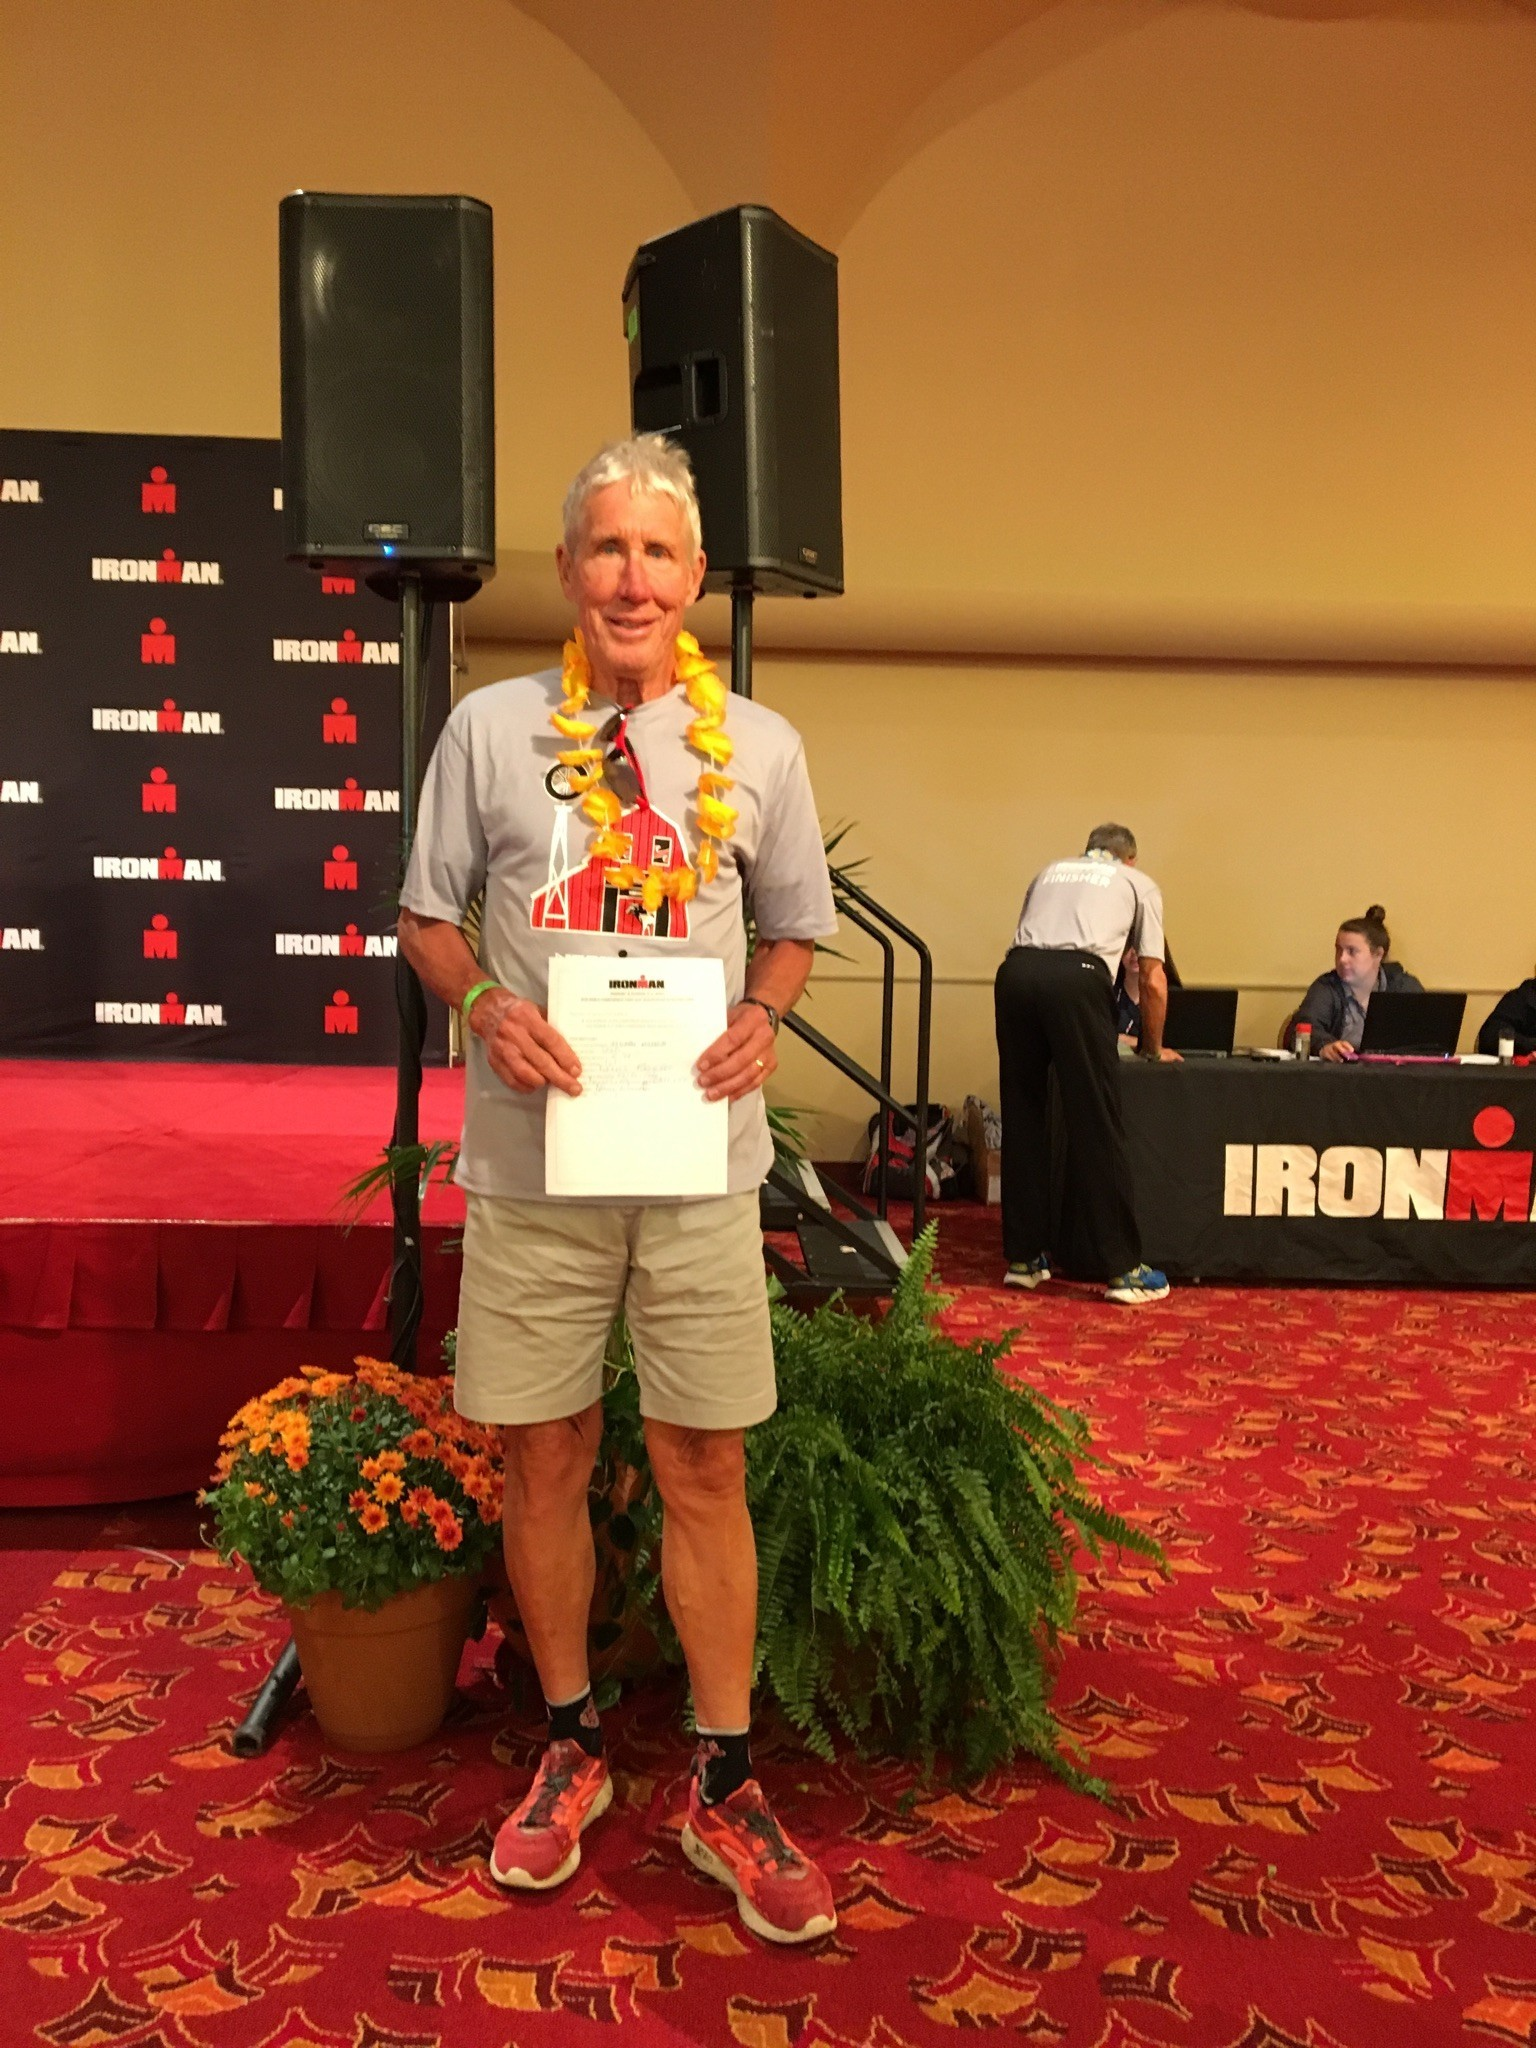 Dennis Kasischke qualified for Ironman Kona 2018.